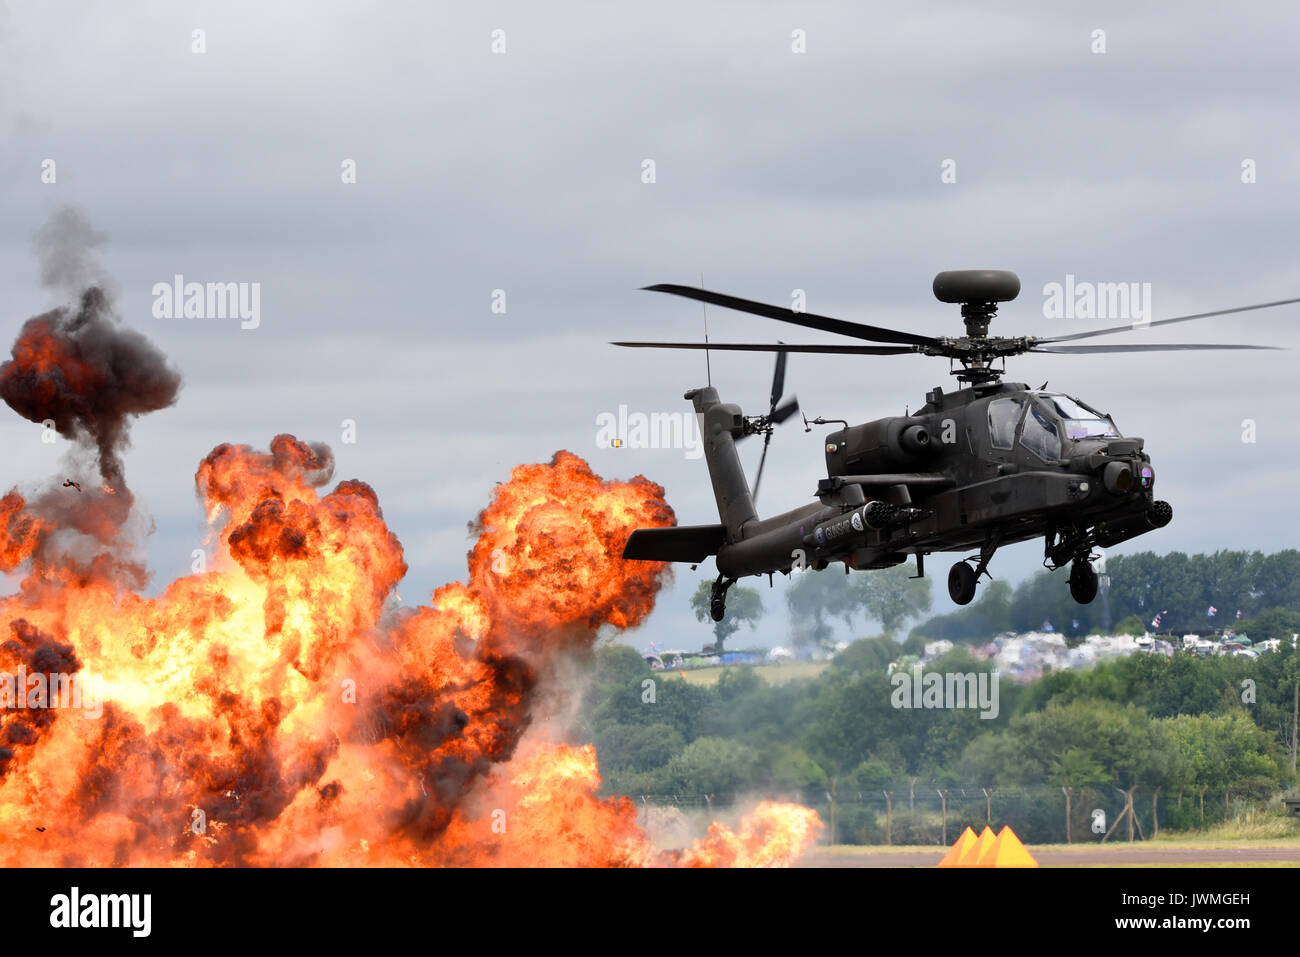 British Army Agusta Westland AH-64 Apache AH1 attack helicopter with exploding pyrotechnics at an airshow. Space for copy - Stock Image